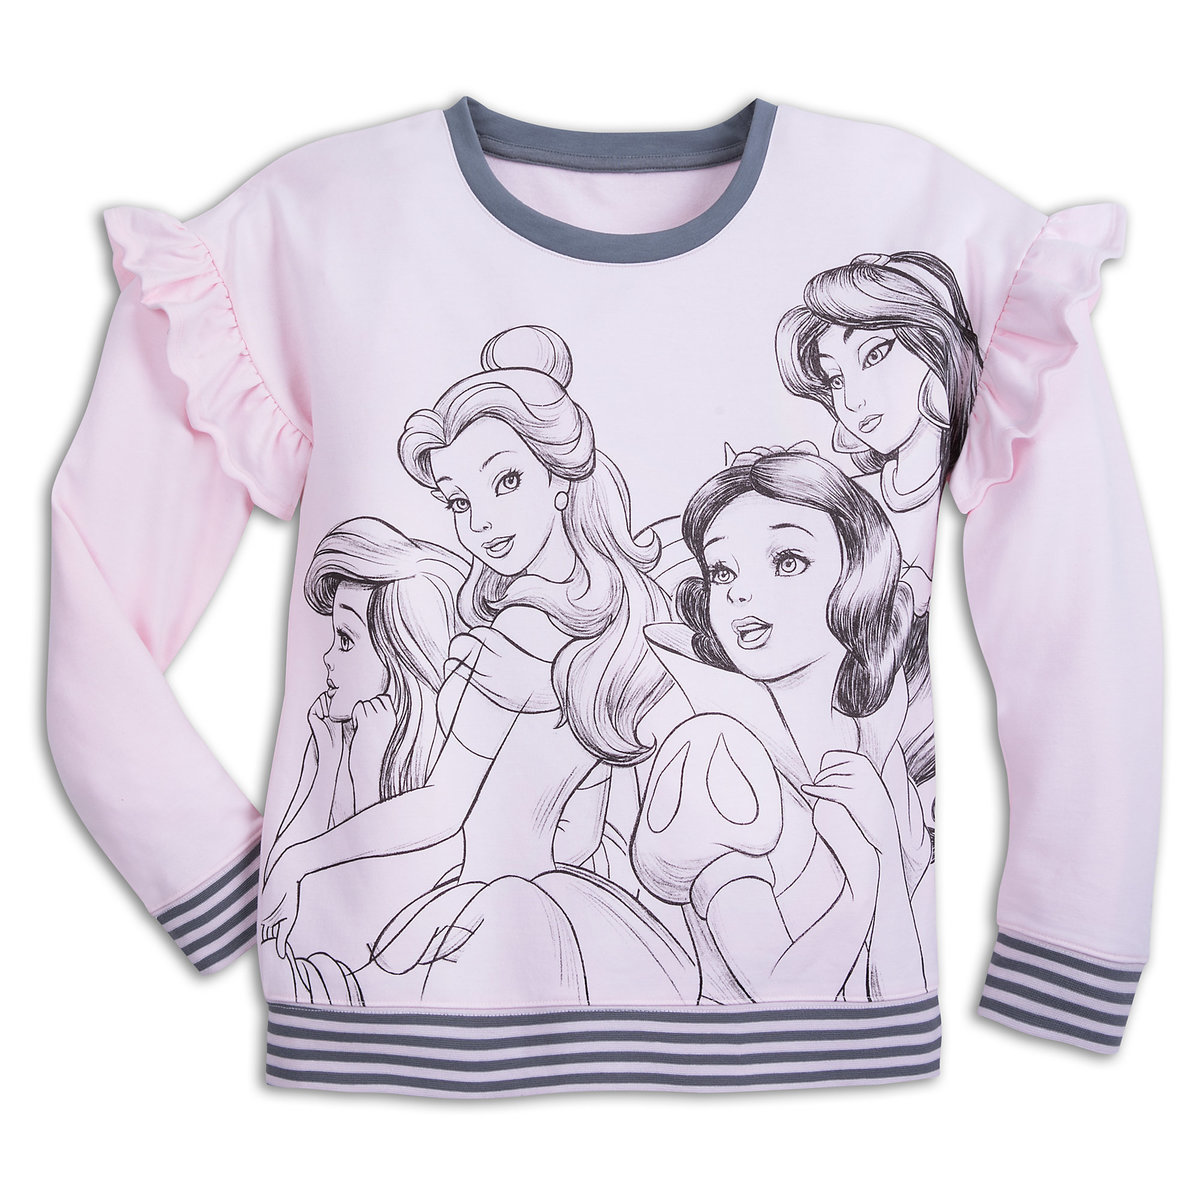 1998acd25156 Product Image of Disney Princess Shirt for Women # 1